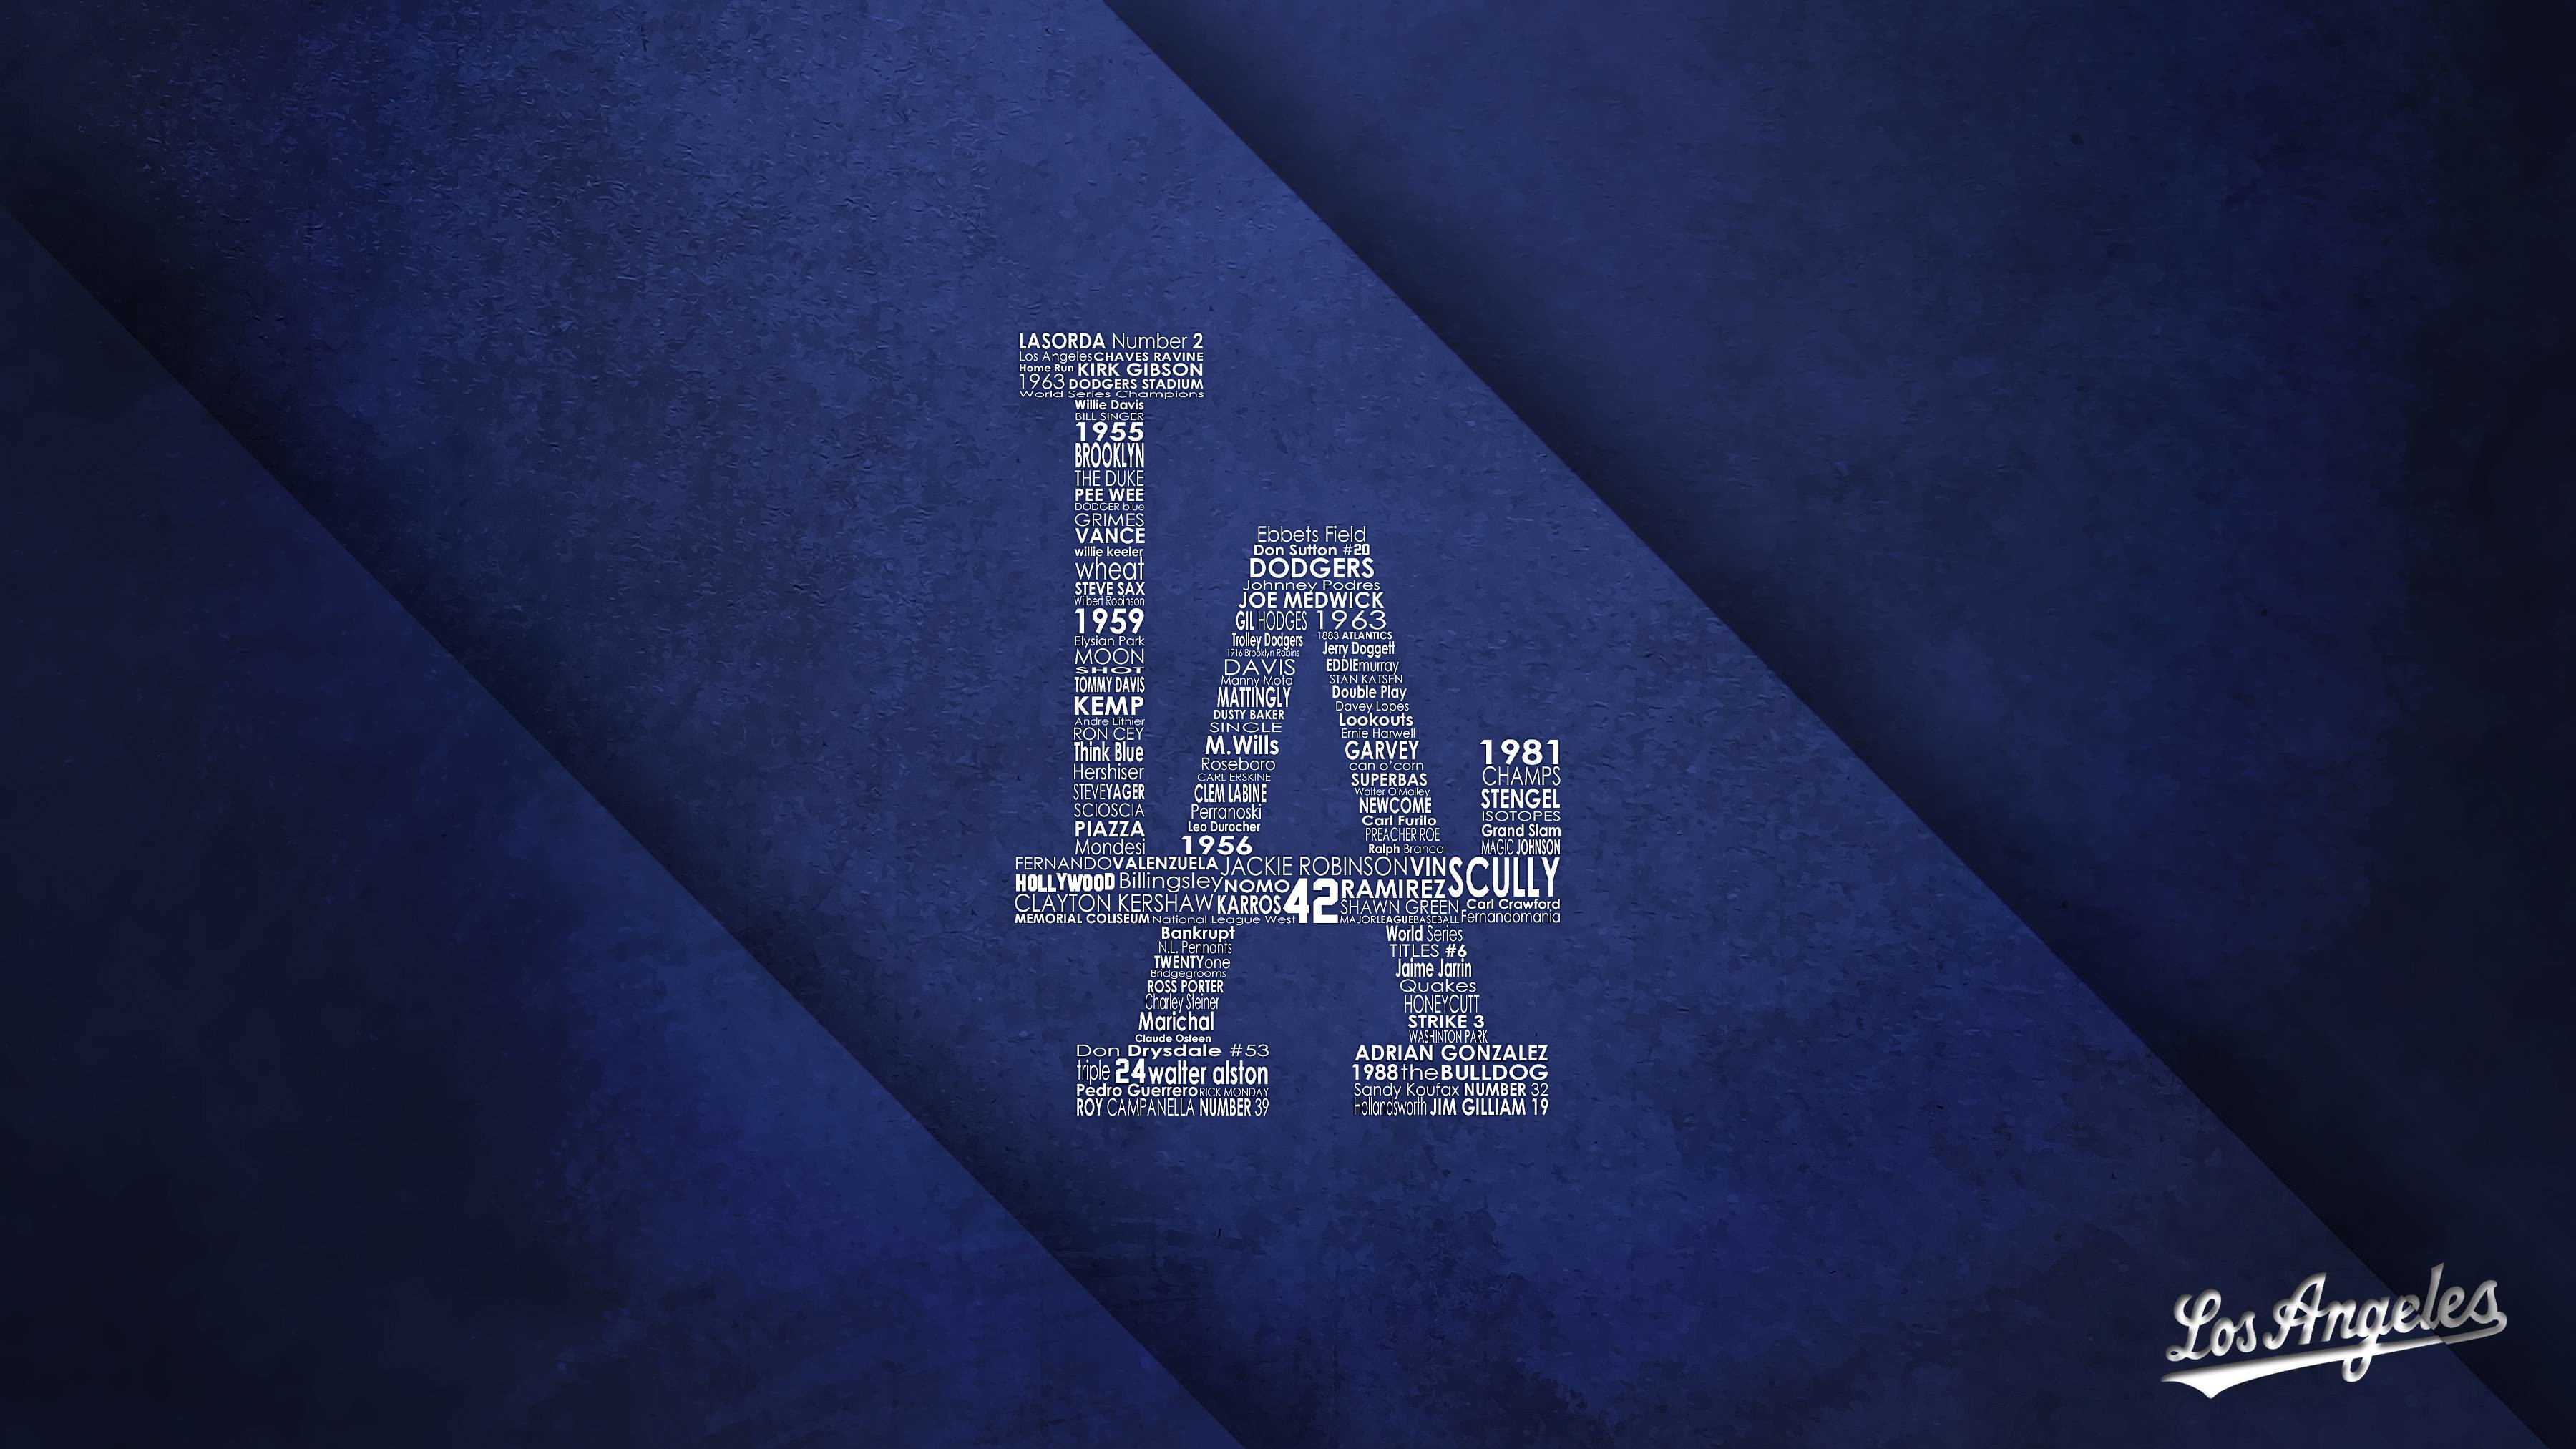 Los Angeles Dodgers Wallpaper Iphone 67 Images